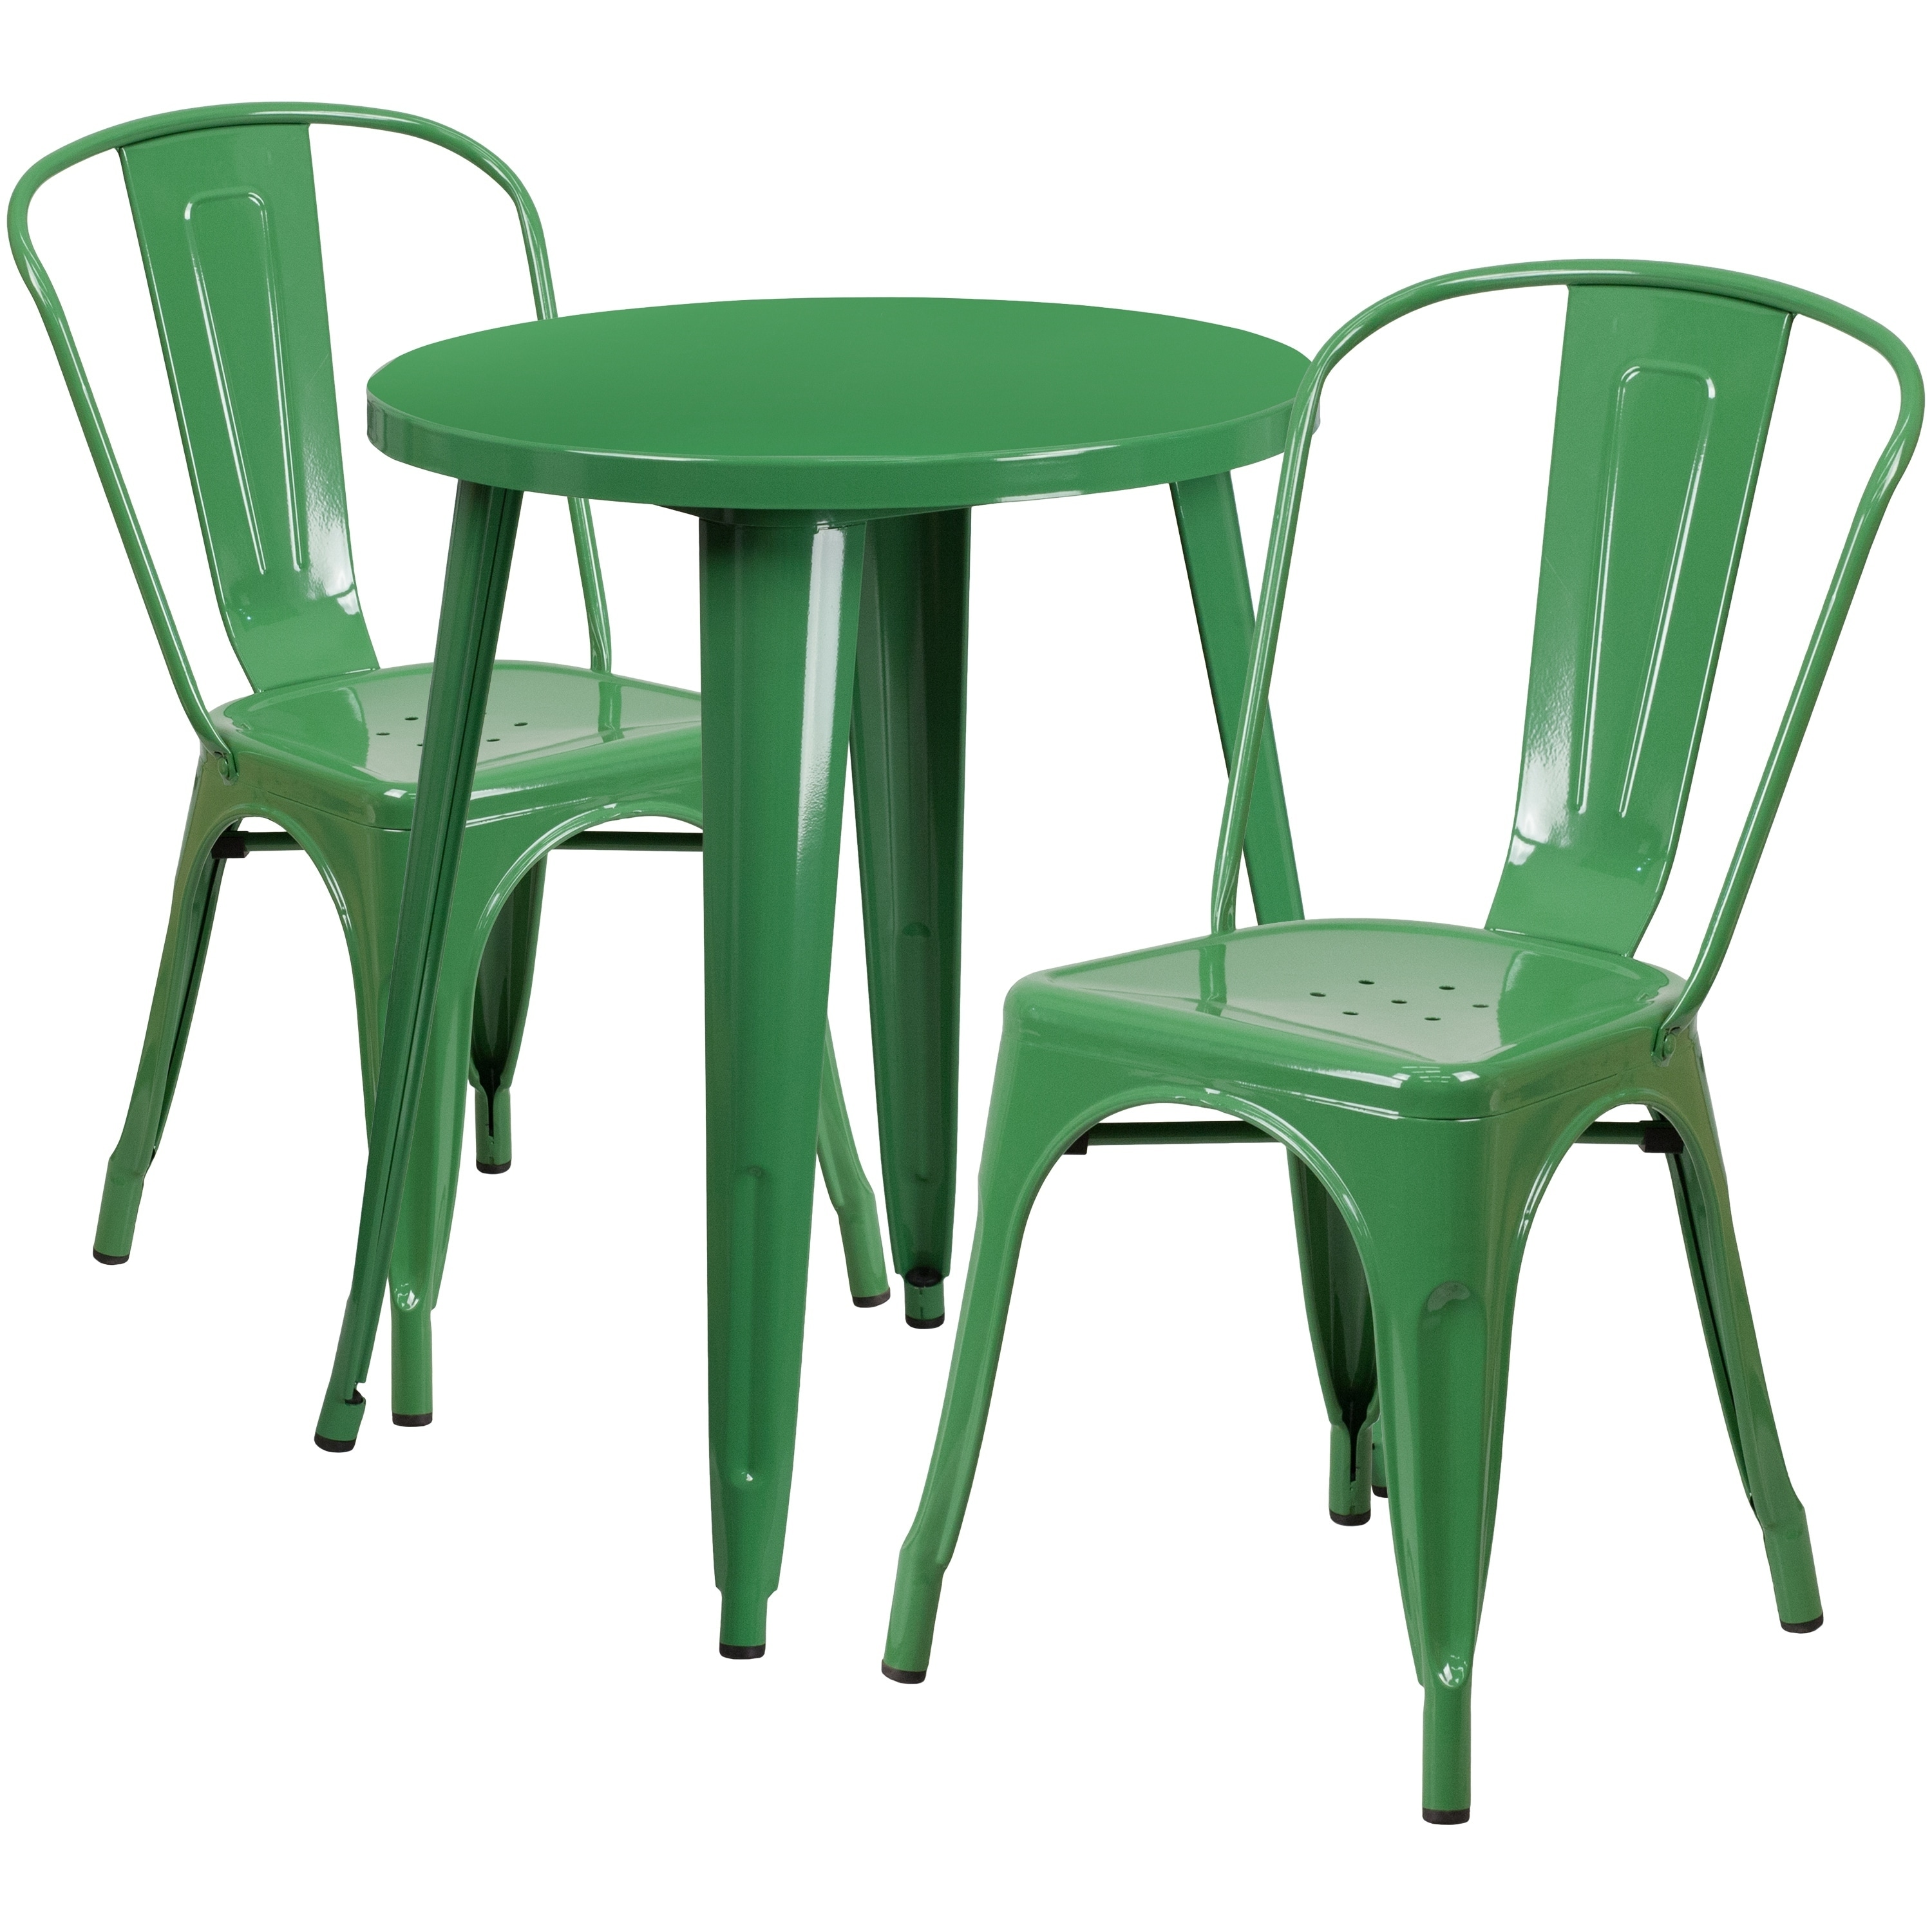 Shop 24 round metal indoor outdoor table set with 2 cafe chairs free shipping today overstock com 13404381